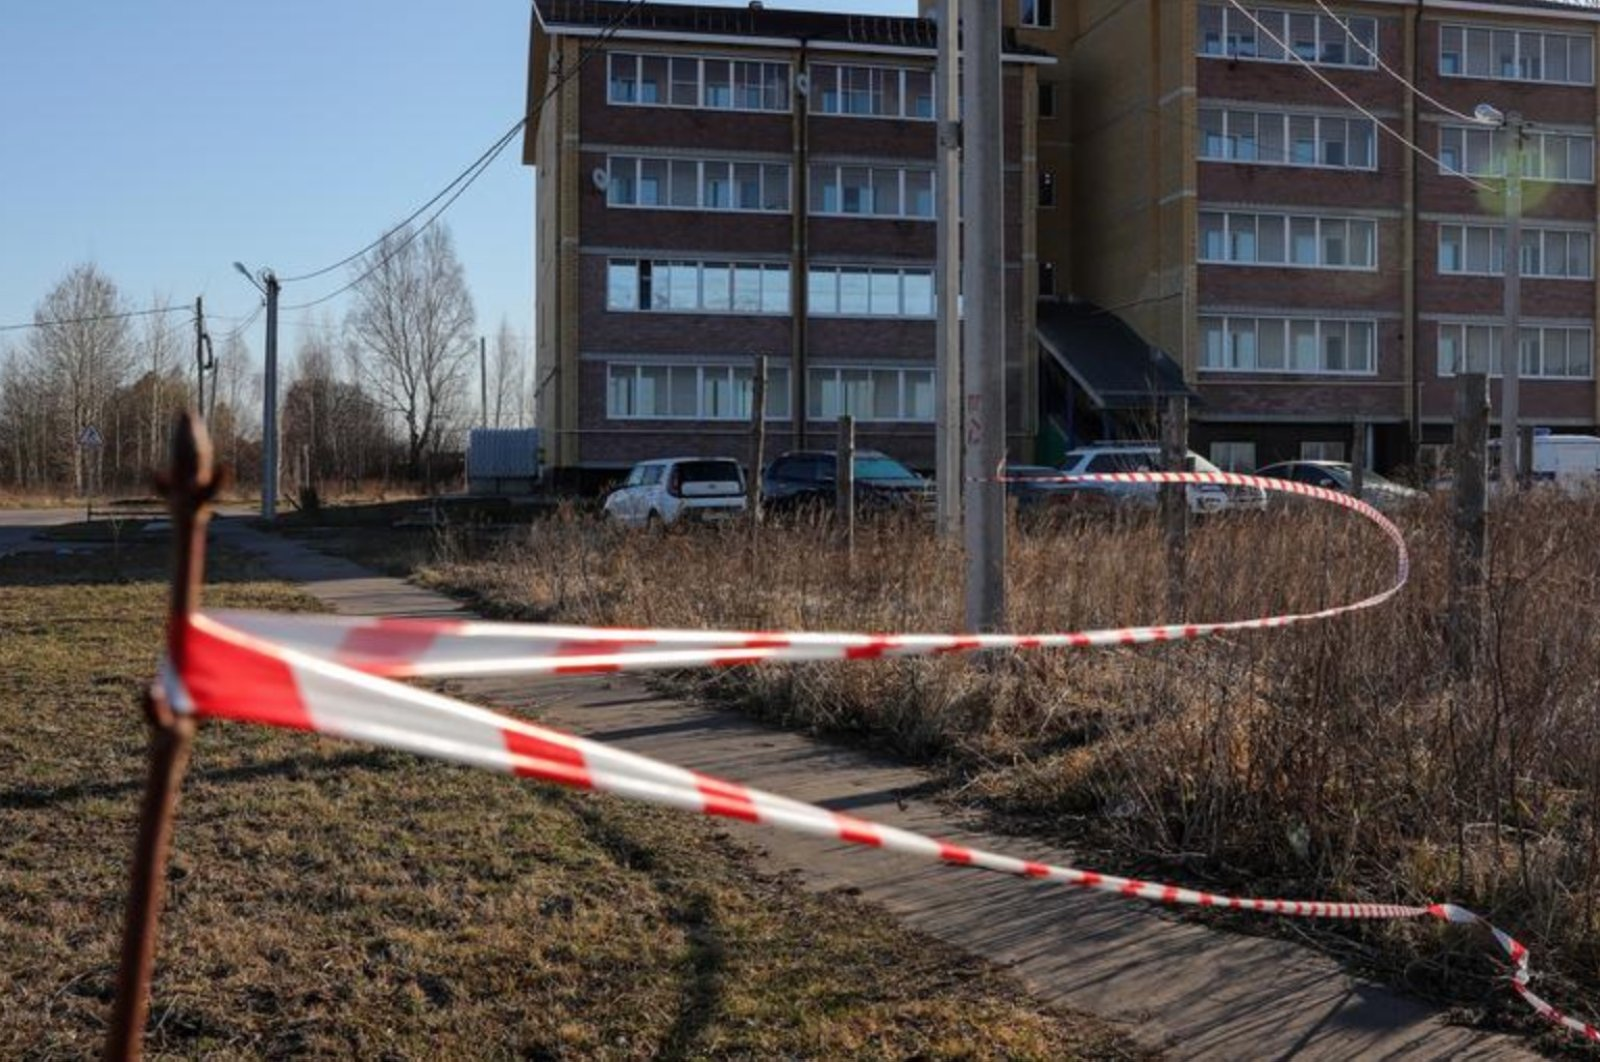 The crime scene in Russia's Ryazan (DPA Photo)